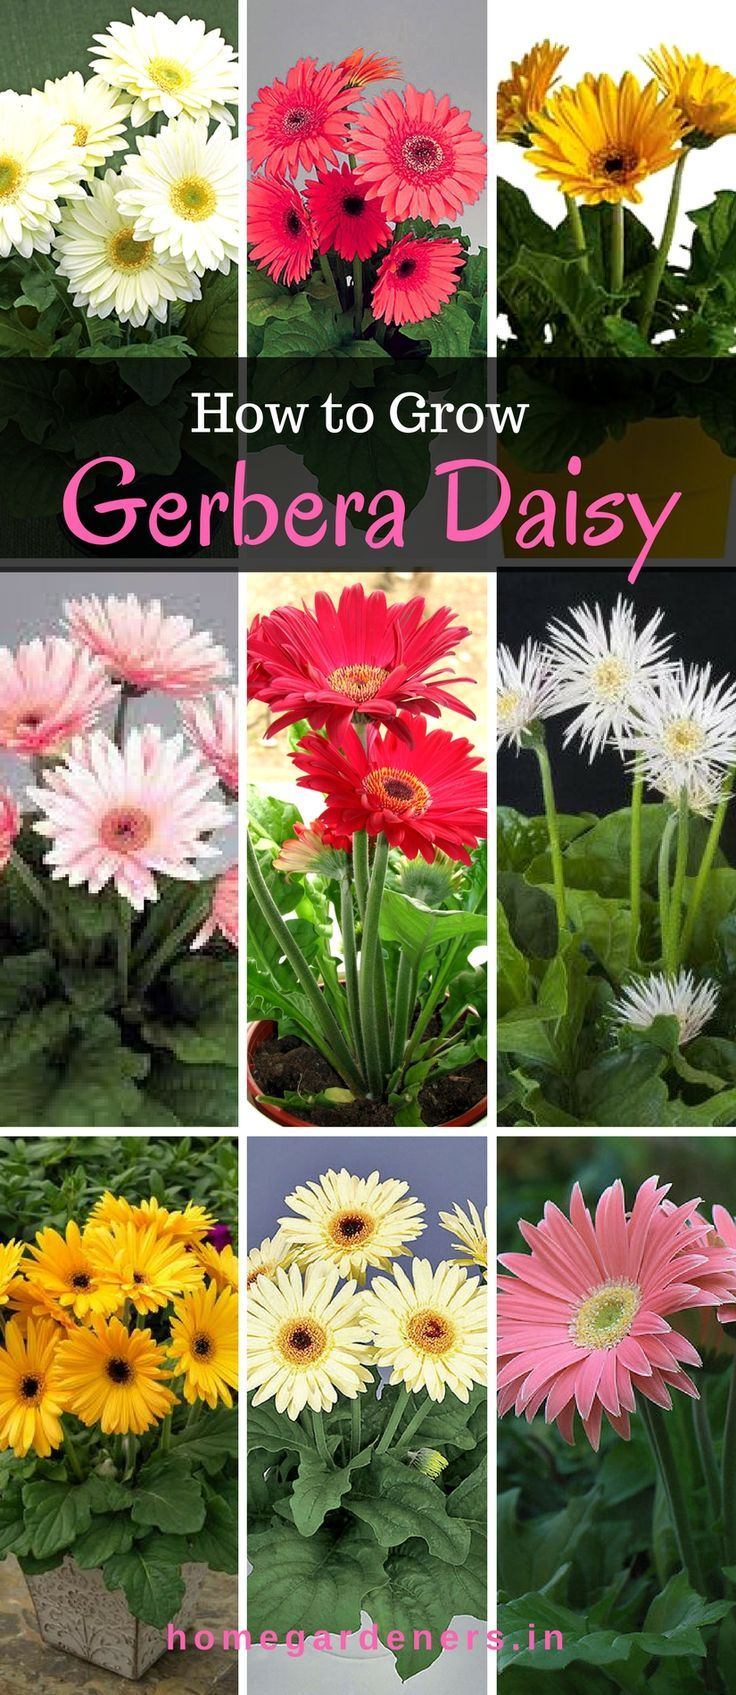 Gerbera daisy guide the only gerbera daisy resources you will ever its fun to grow and enjoy gerbera daisy plants in your garden space starting from seedscuttings that spreads beautiful fragrance purifies air and keeps izmirmasajfo